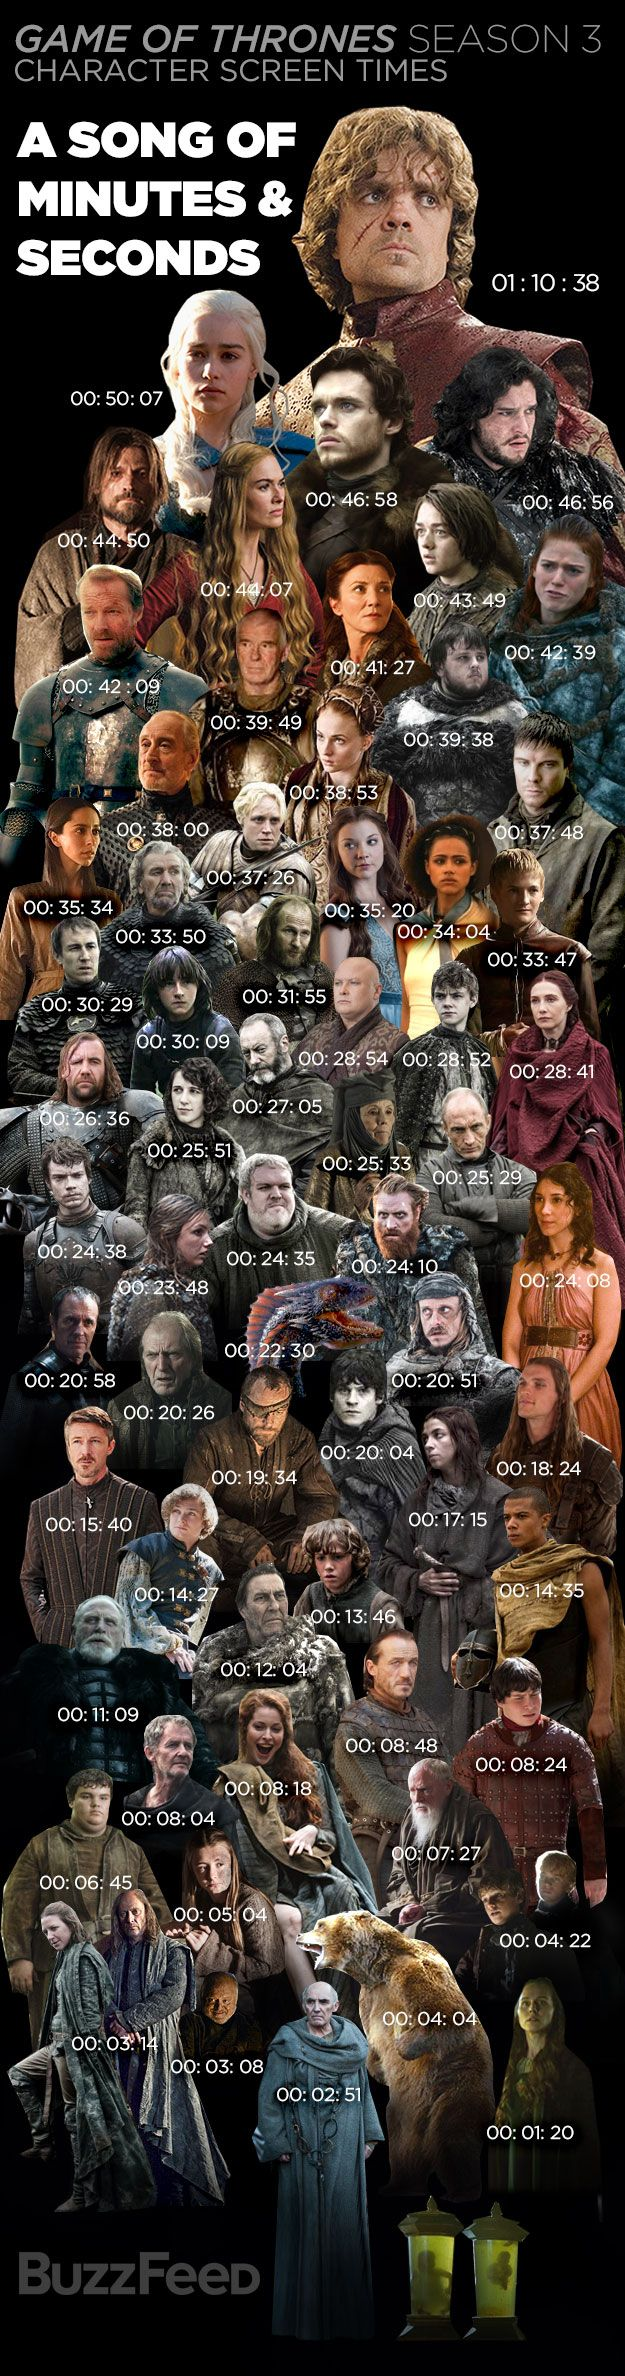 "Tyrion Lannister Is The Real King Of ""Game Of Thrones"" - an impressive infographic from @BuzzFeed"